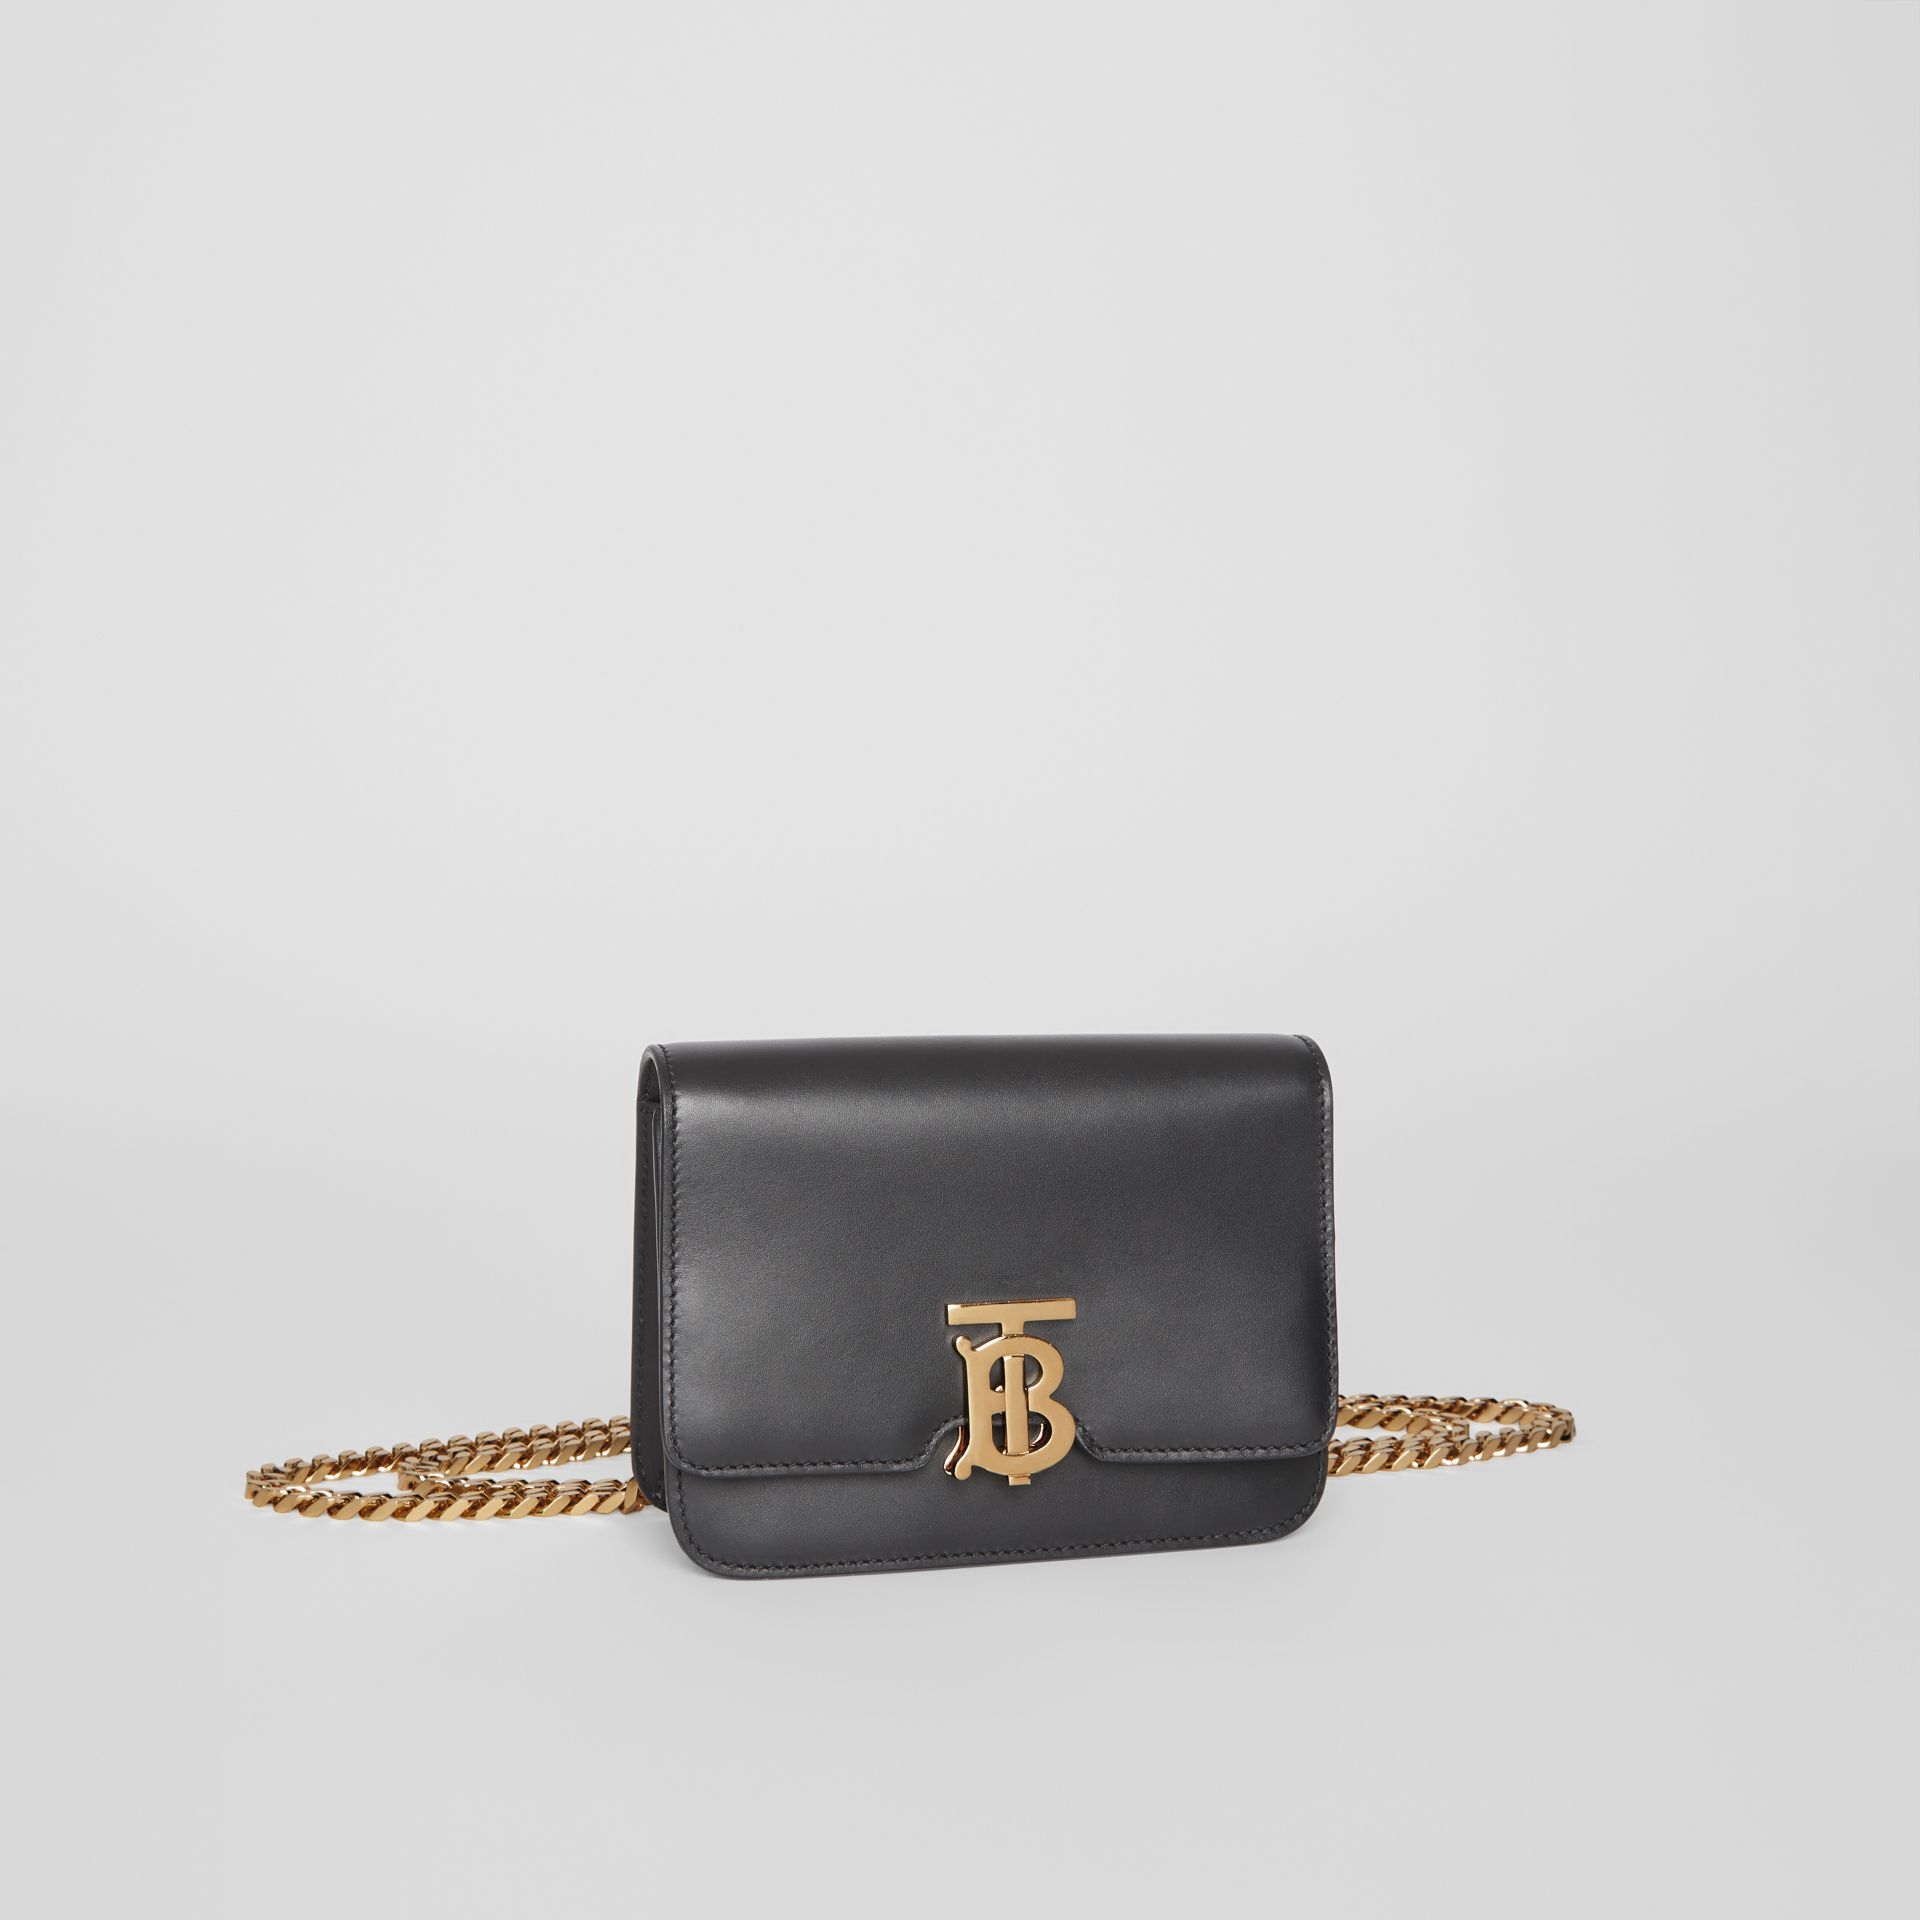 Belted Leather TB Bag in Black - Women | Burberry - gallery image 6